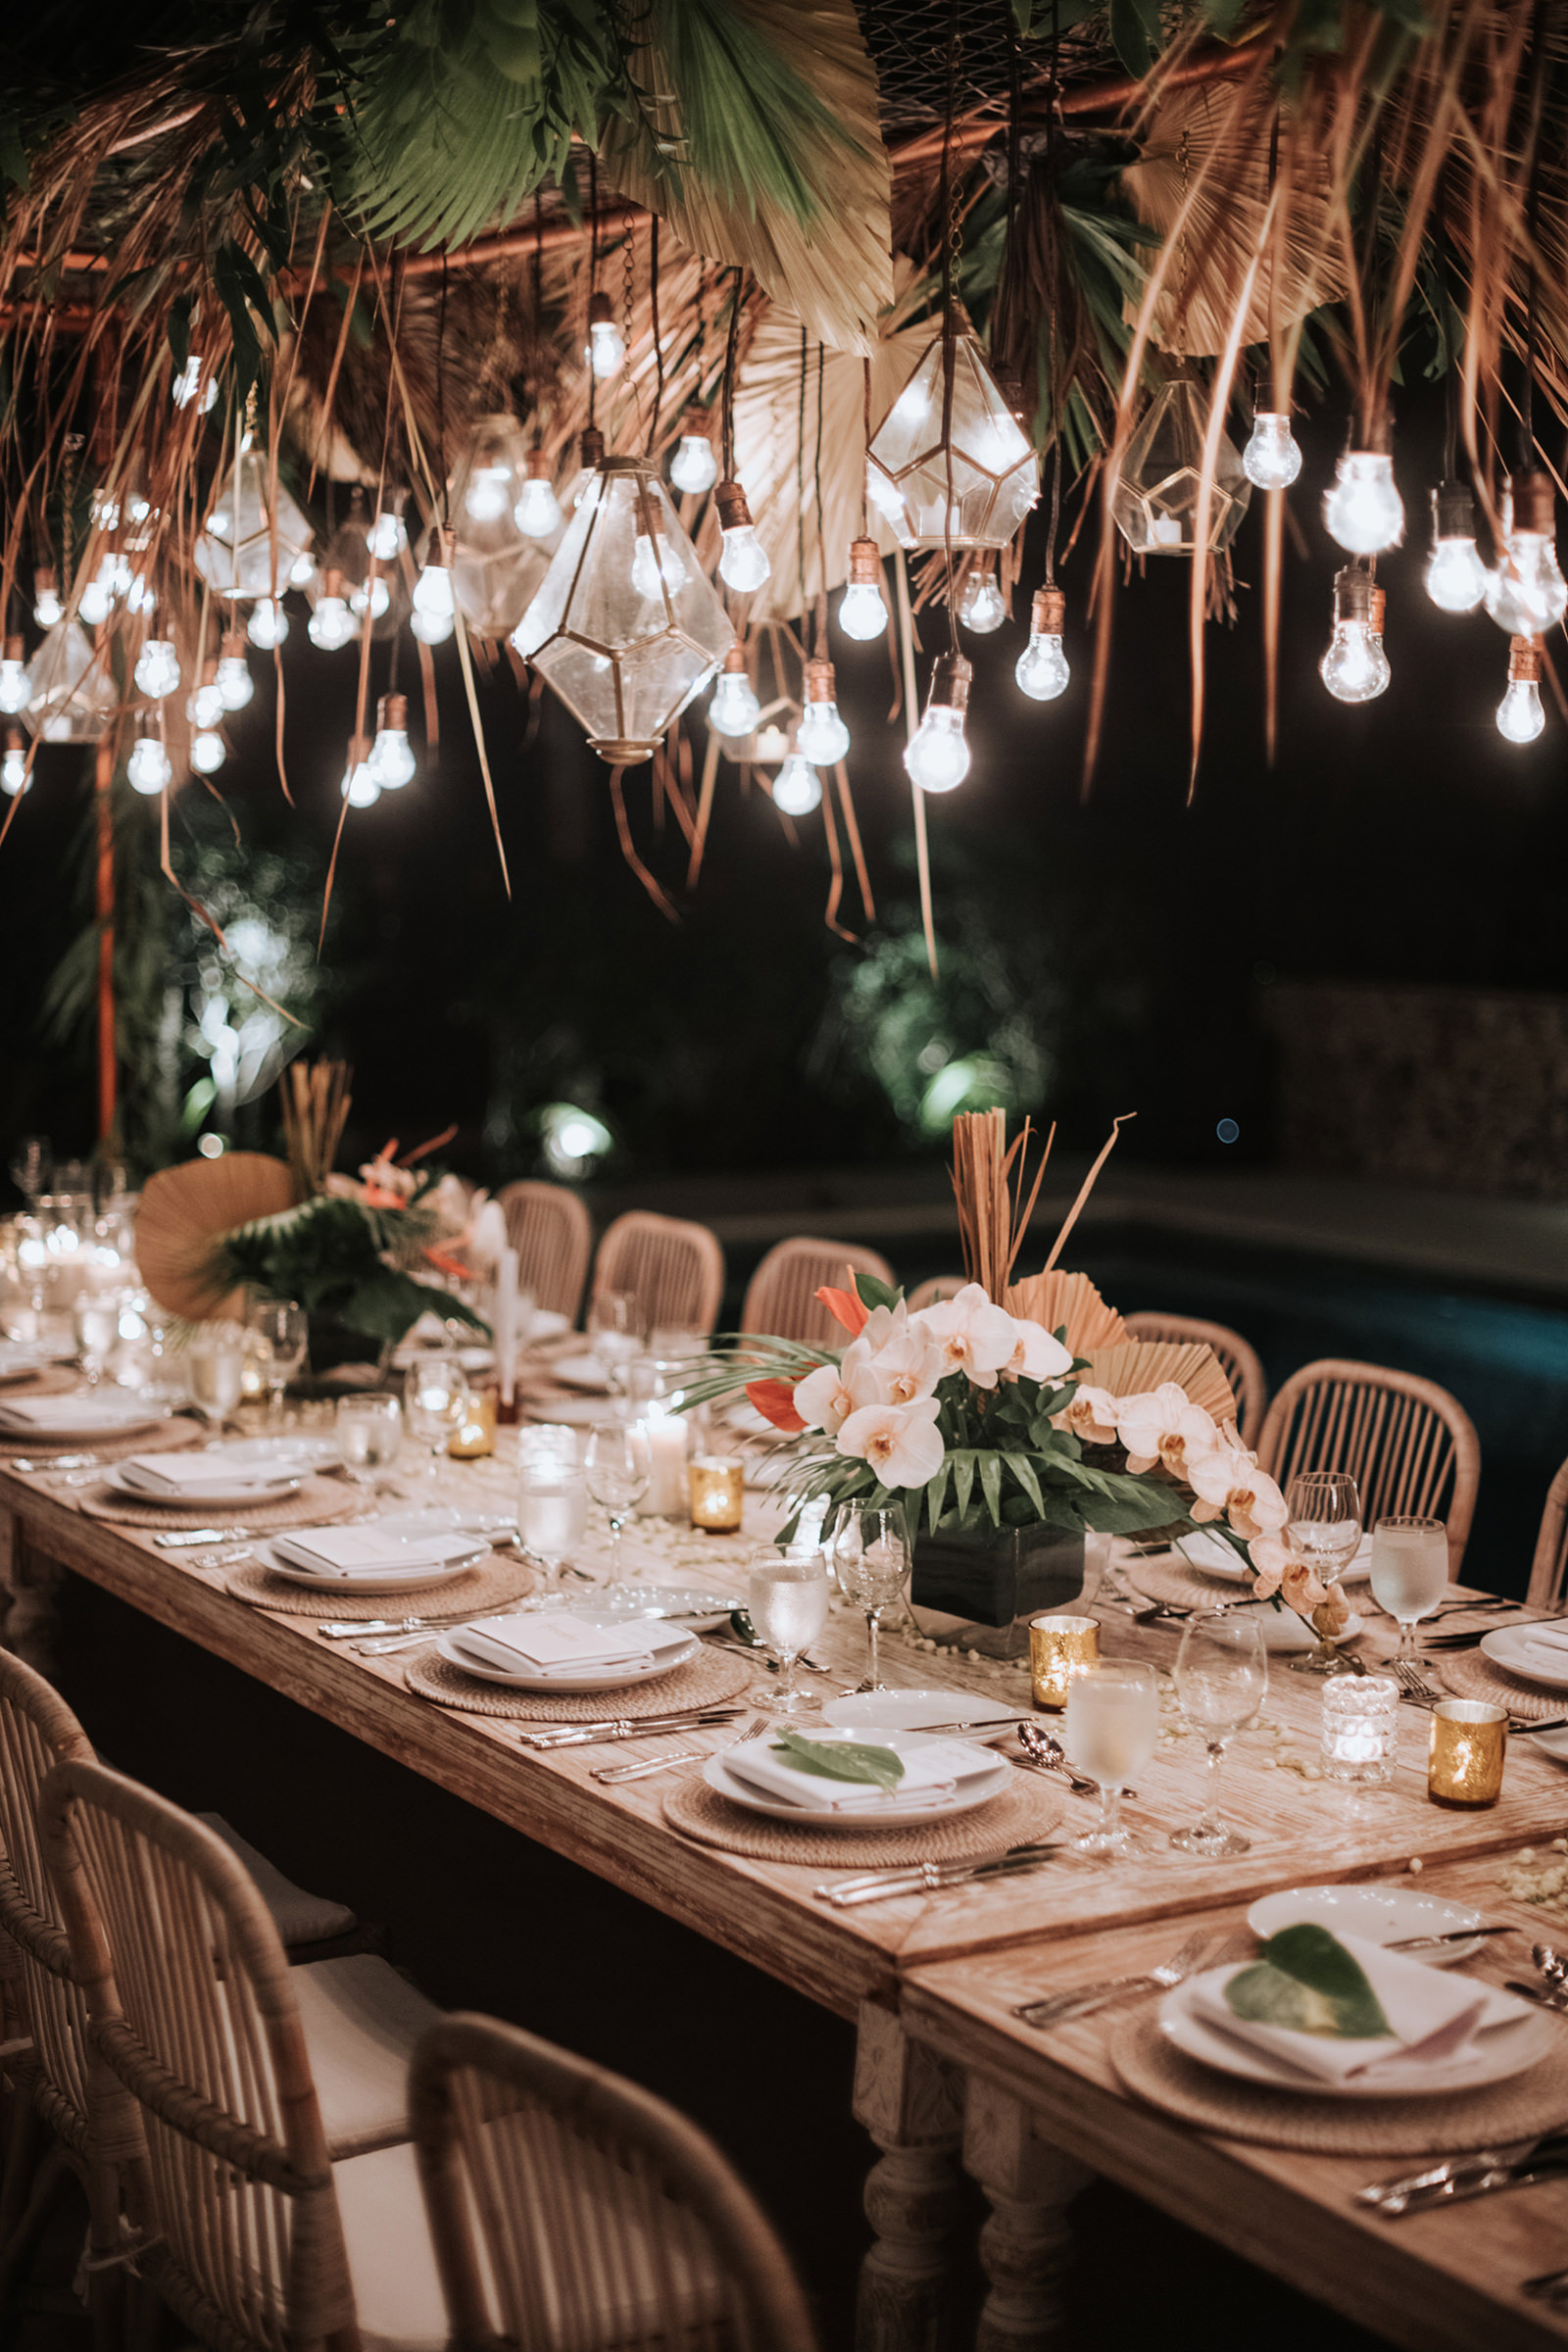 Wedding reception table in rattan - Photo by MunKeat Photography Studio